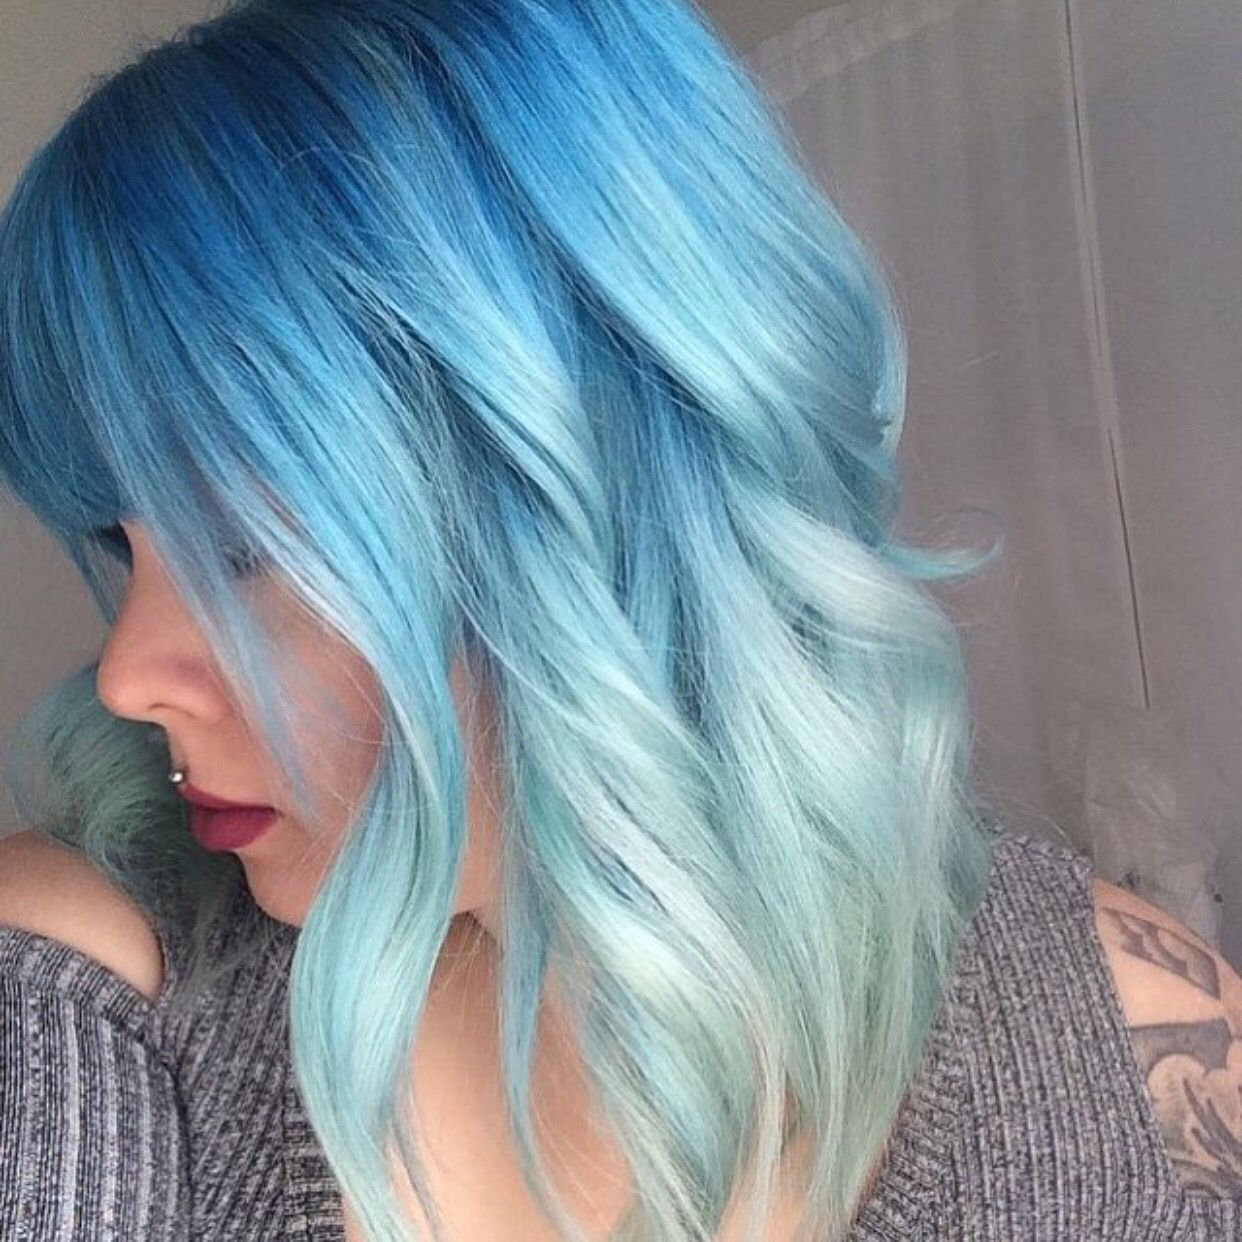 Blue hair color melt and beautiful curly lob by ashley rodgers